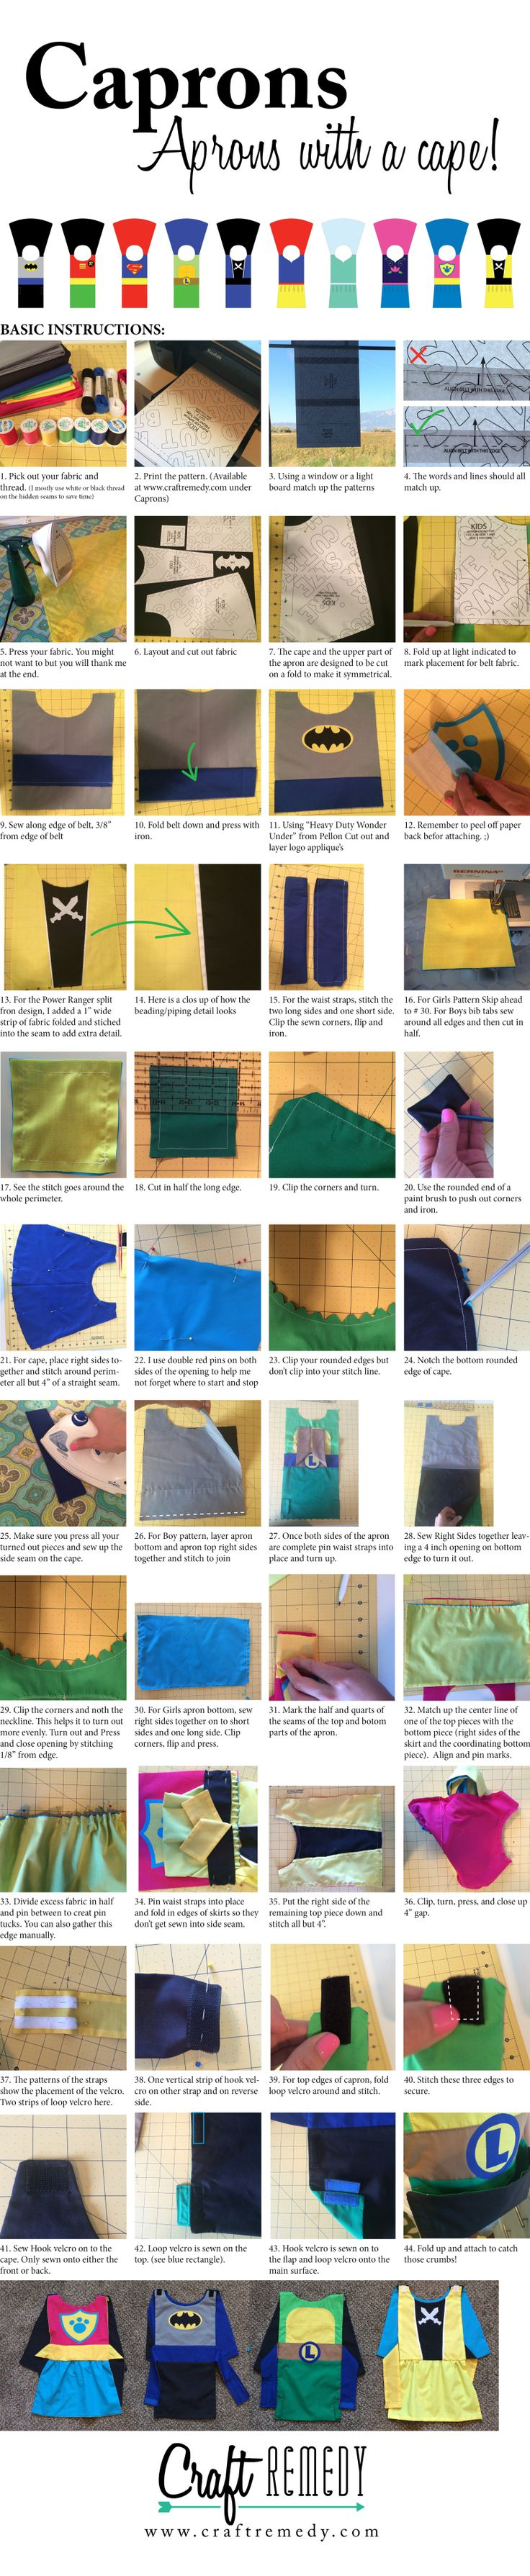 Craft Remedy Caprons {Aprons with a Cape} Instructions #Giveaway #Halloween #Kidscostumes